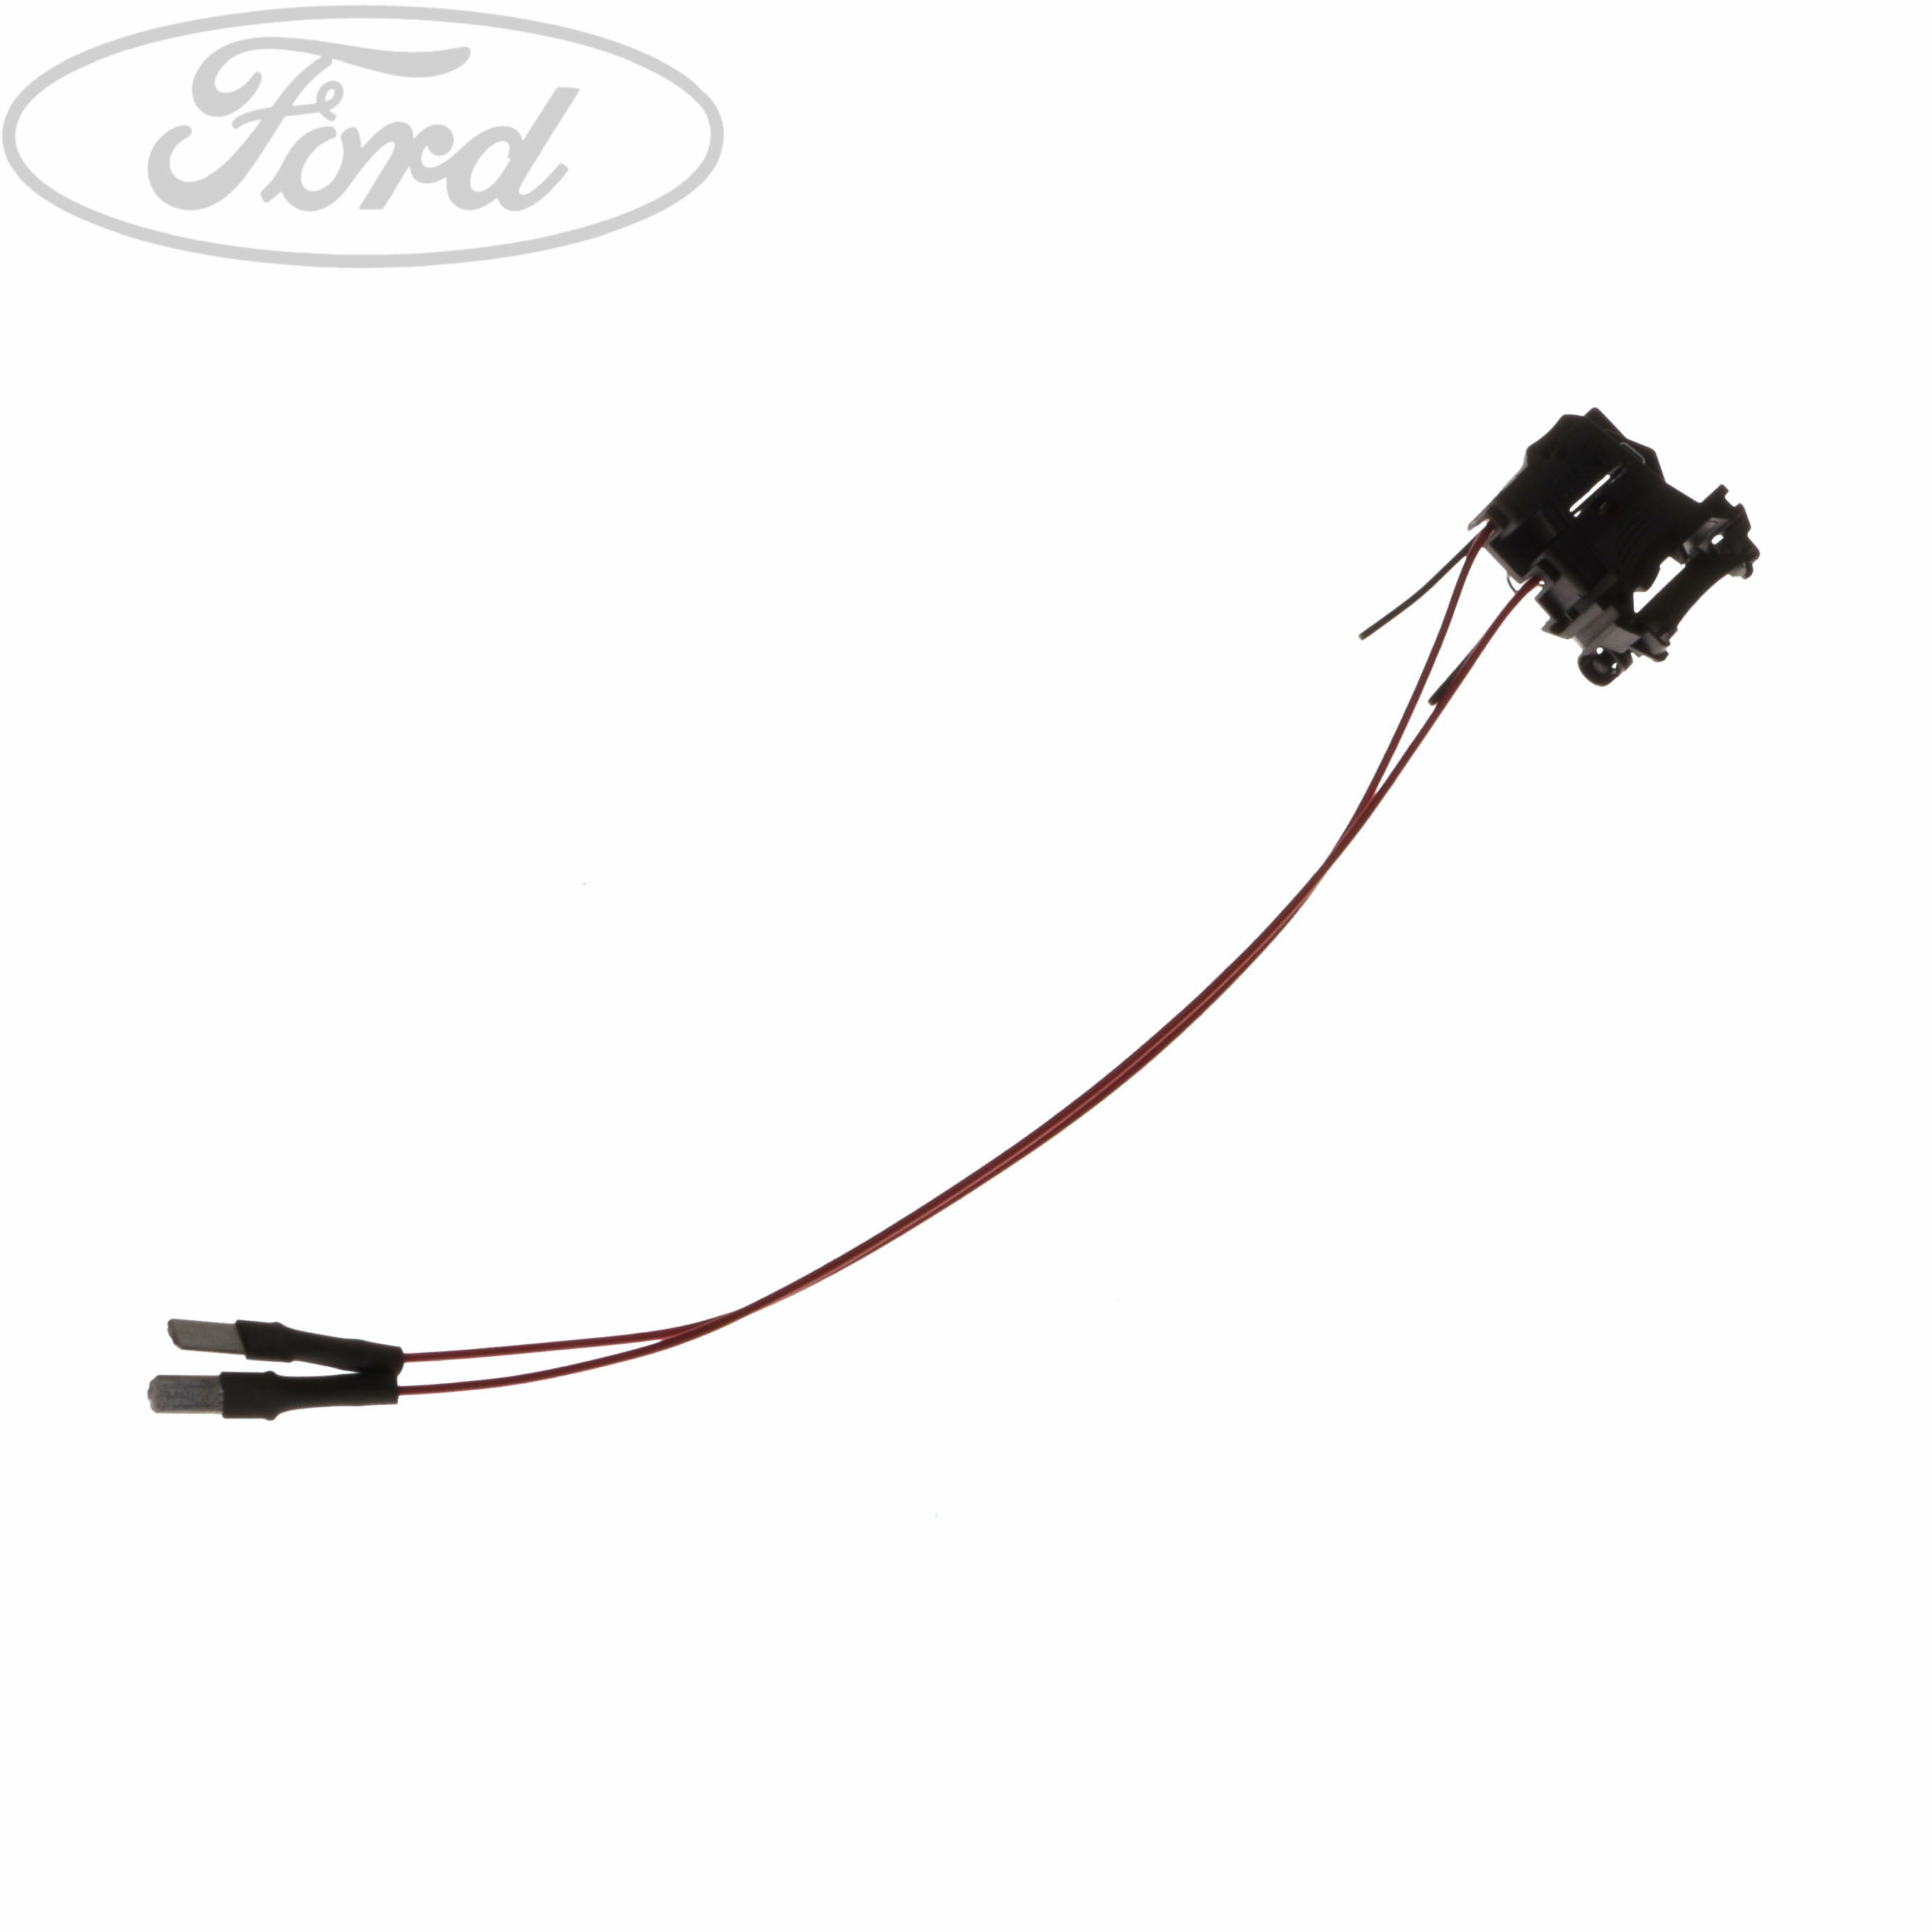 genuine ford focus mk ii front headlight resistor wiring 1758231 genuine ford focus mk ii front headlight resistor wiring 1758231